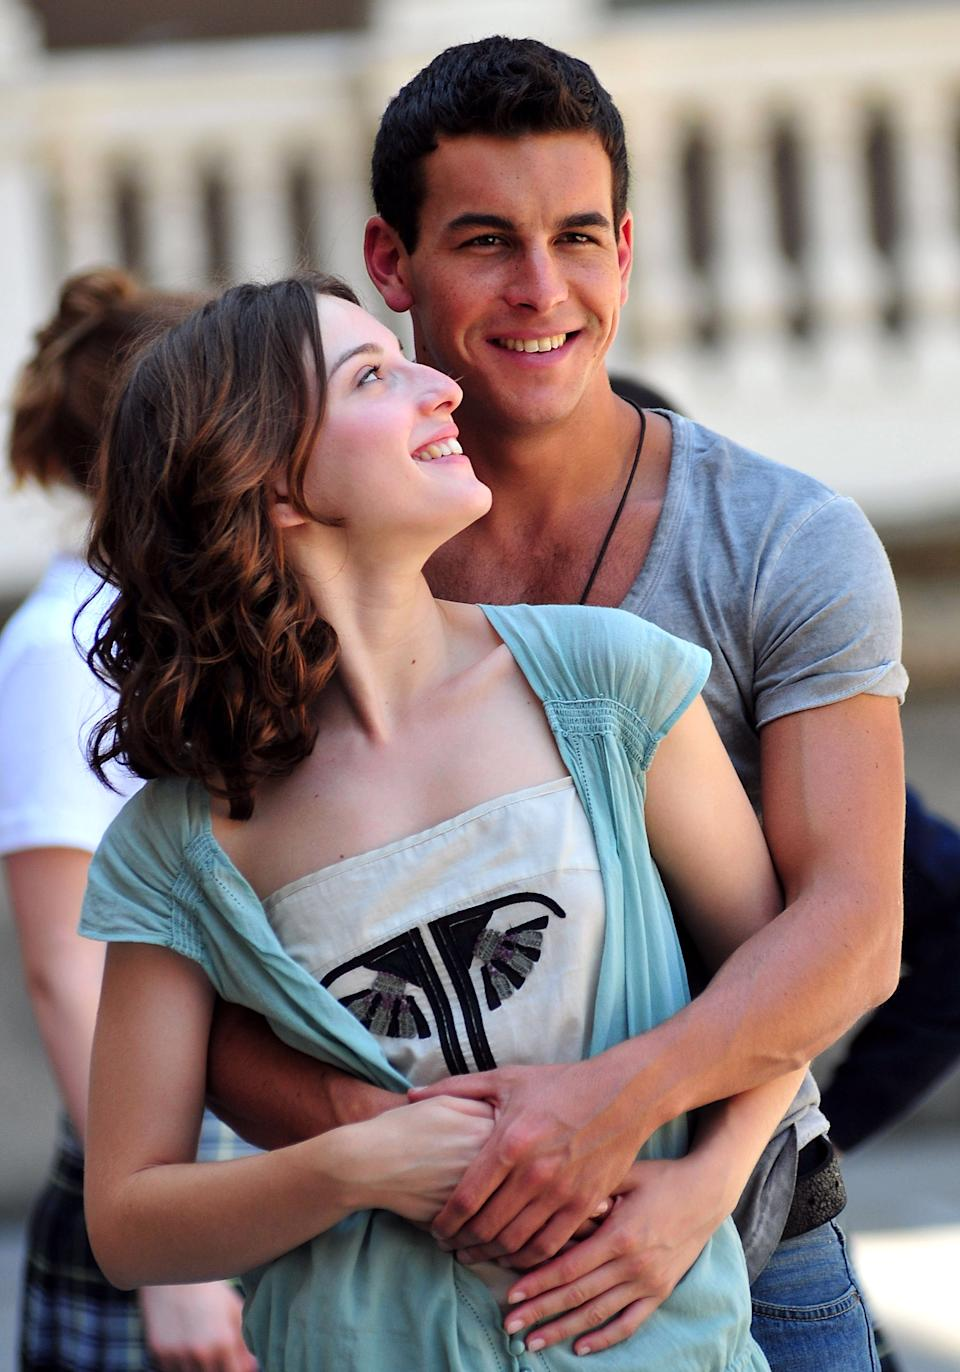 BARCELONA, SPAIN - JULY 01:  Actors Mario Casas and Maria Valverde pose during a photocall on the set of their latest film 'Tres Metros Sobre el Cielo' on July 1, 2010 in Barcelona, Spain.  (Photo by Robert Marquardt/Getty Images)